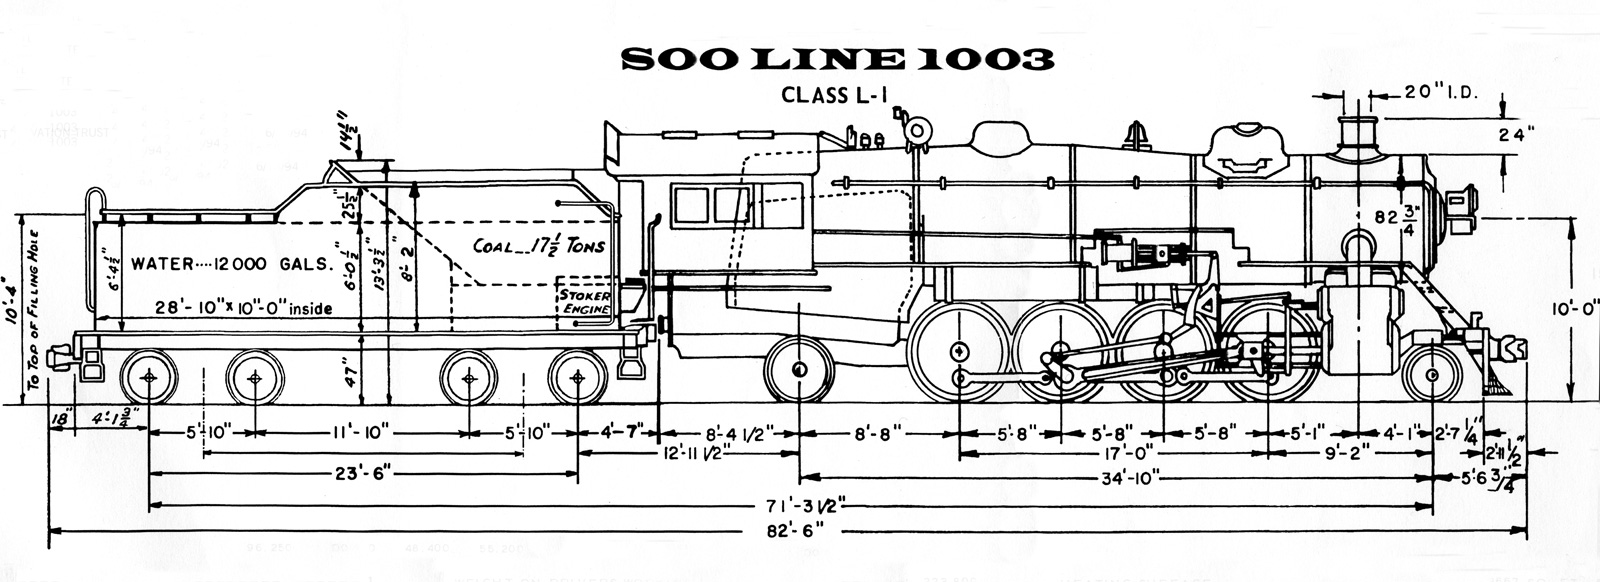 Soo Line 1003 – Labeled Diagram Of A Steam Engine